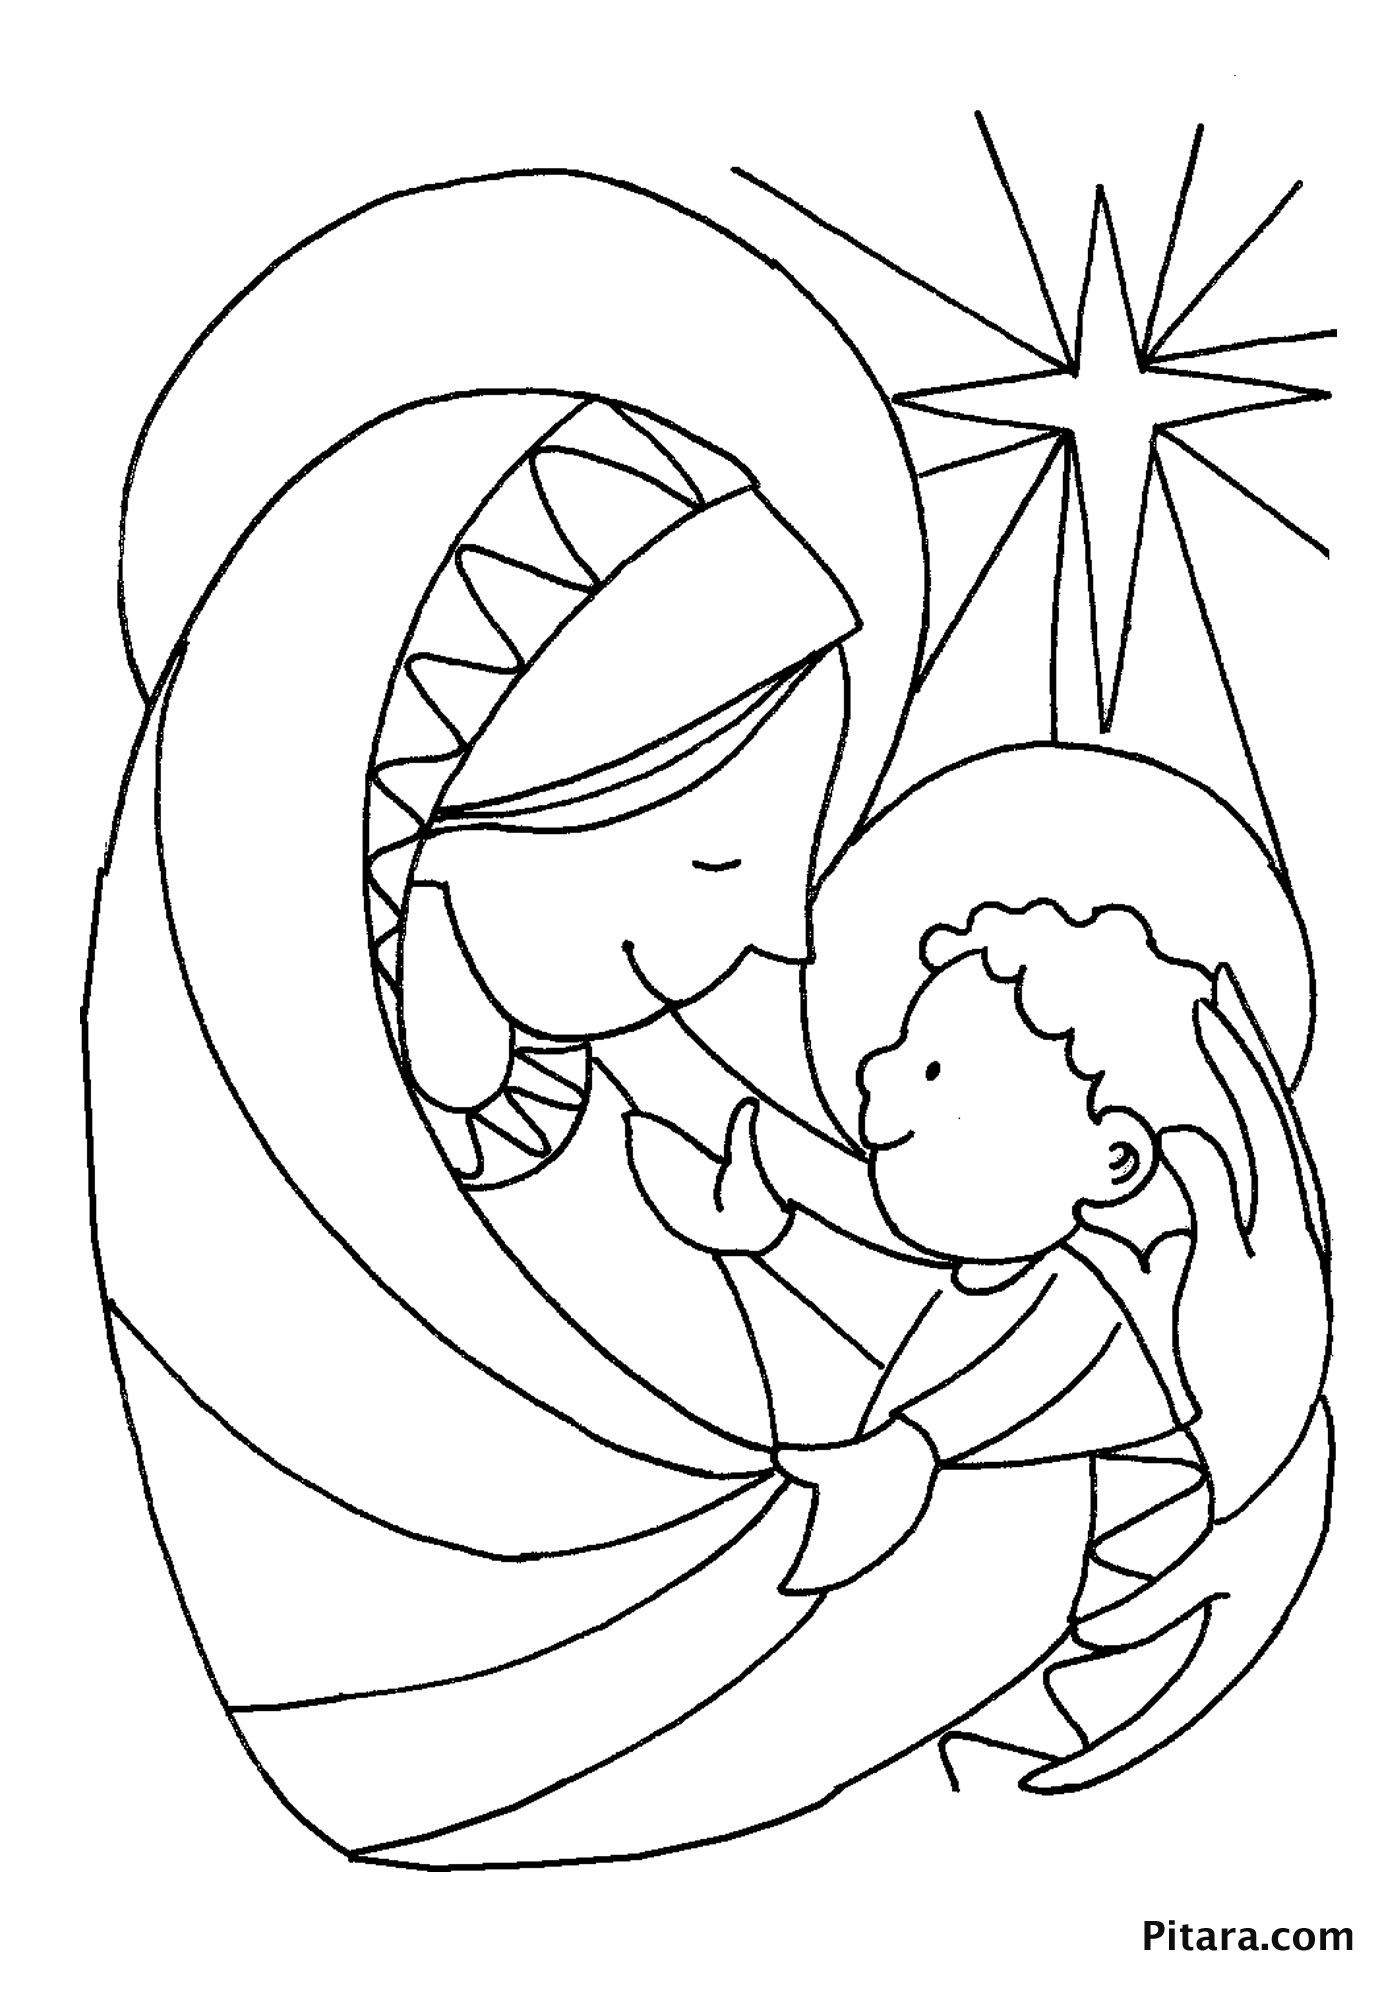 Mary And Baby Jesus Coloring Pages Jesus coloring pages